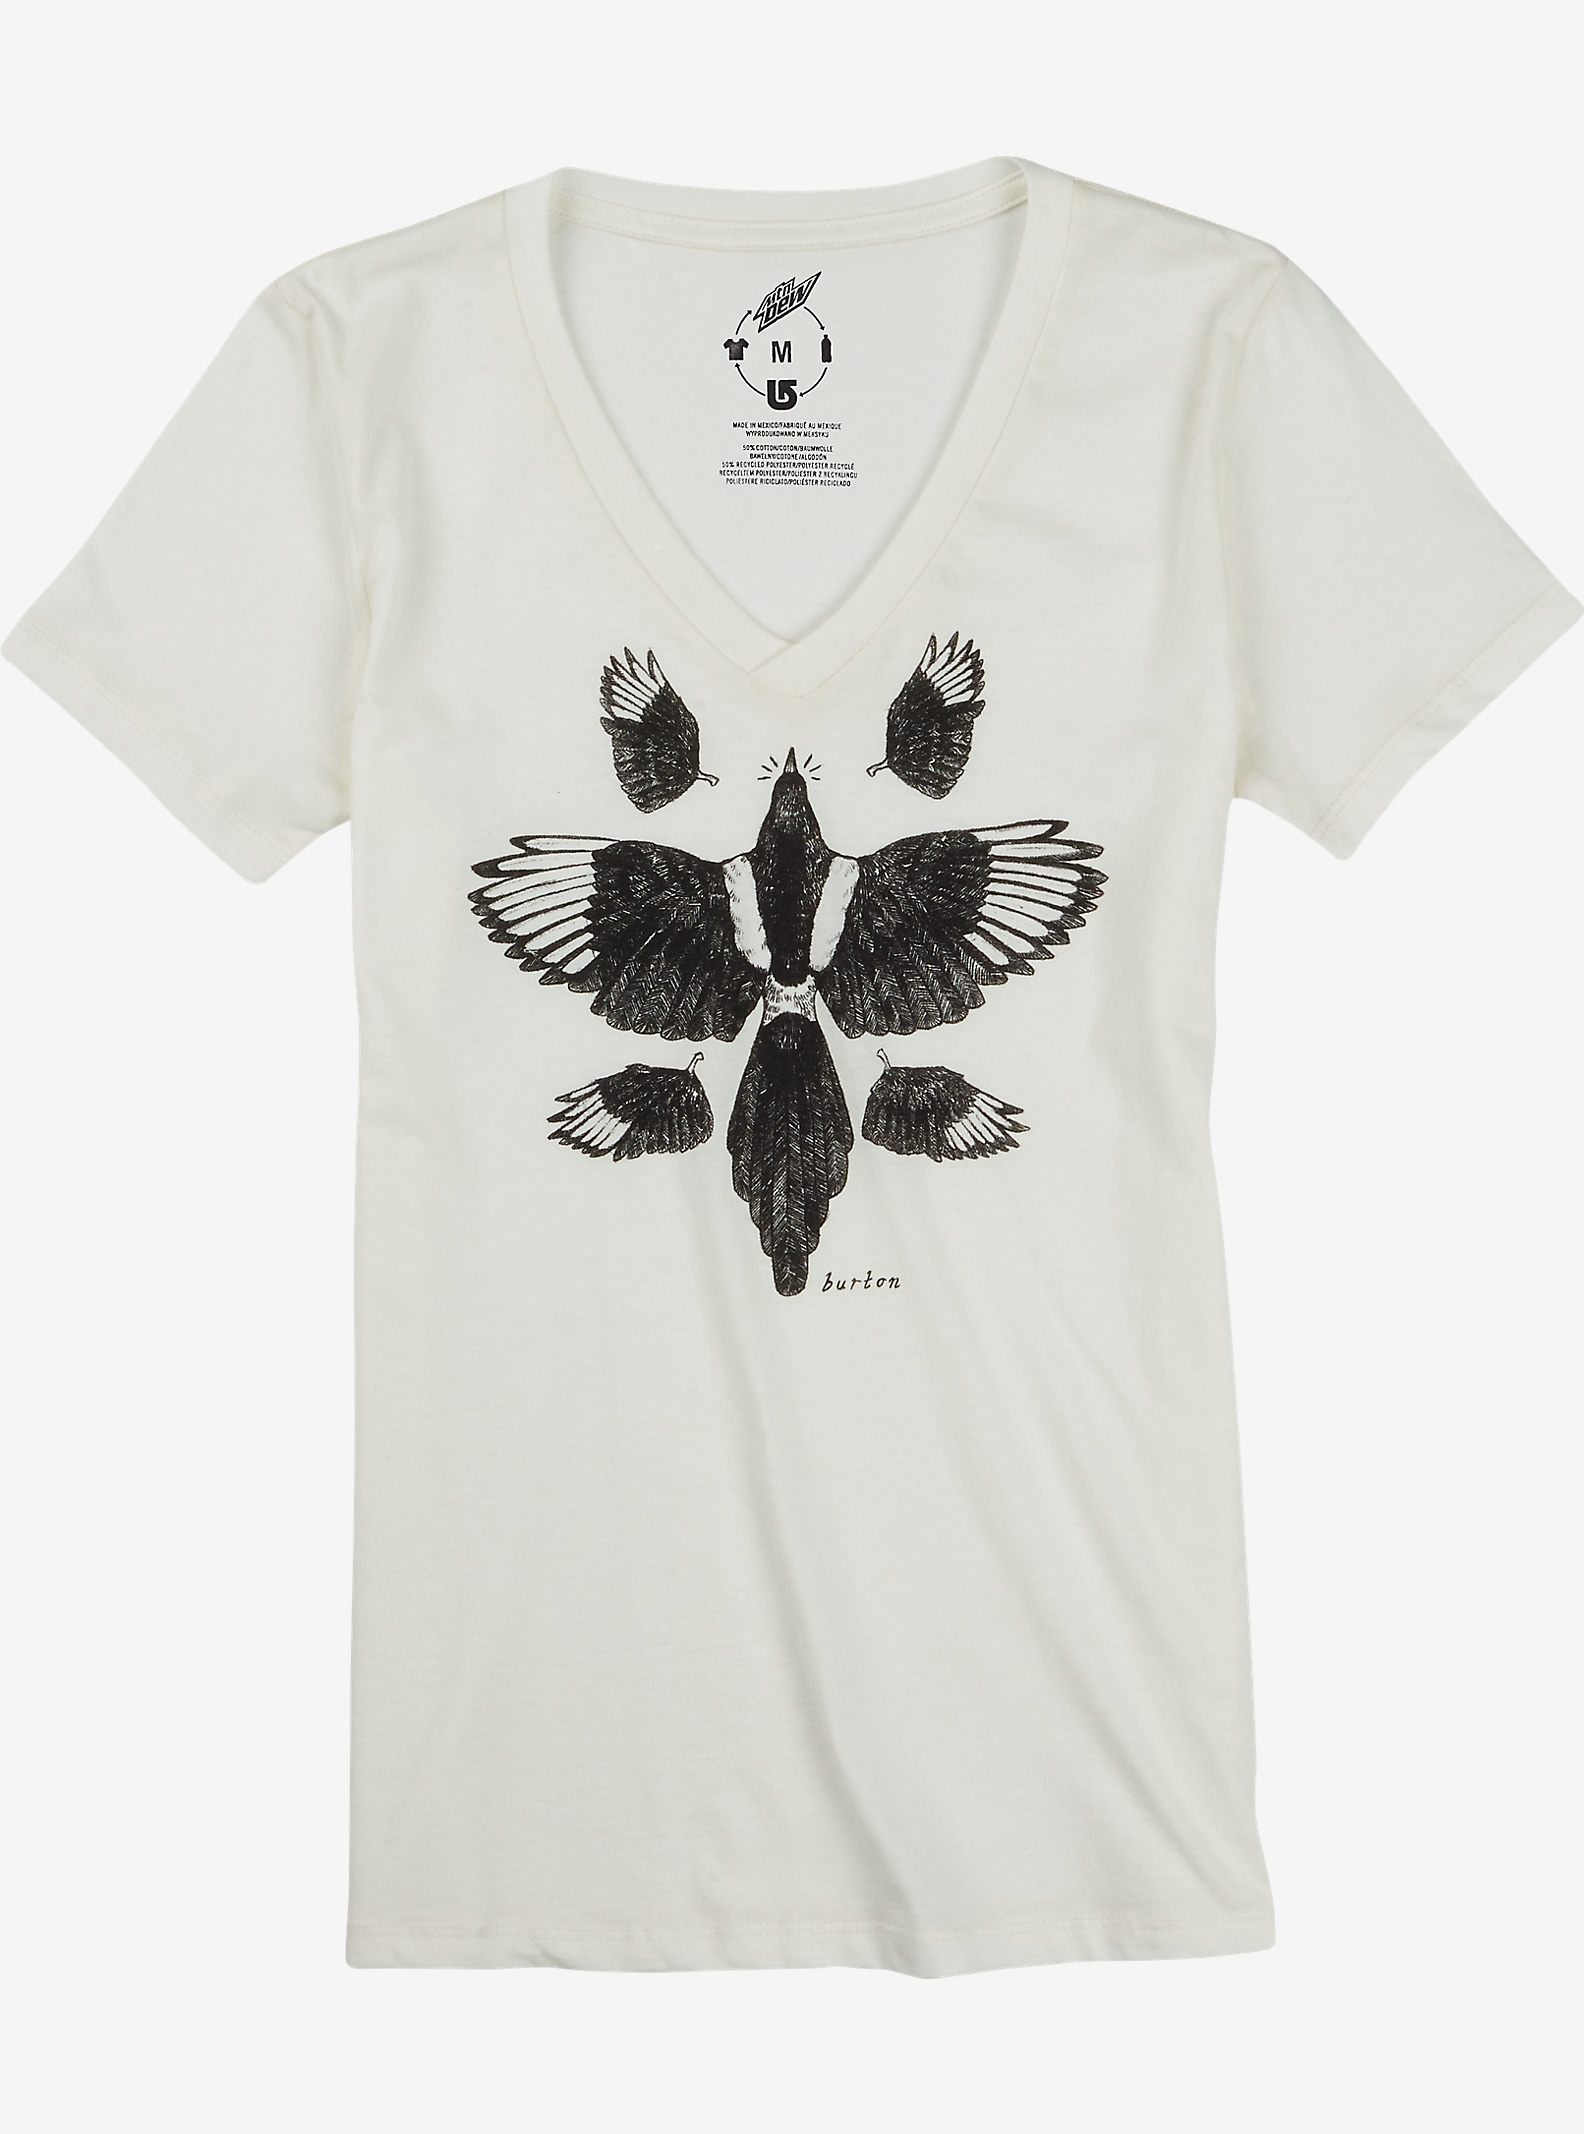 Burton Starling V-Neck Recycled T Shirt shown in Vanilla Heather